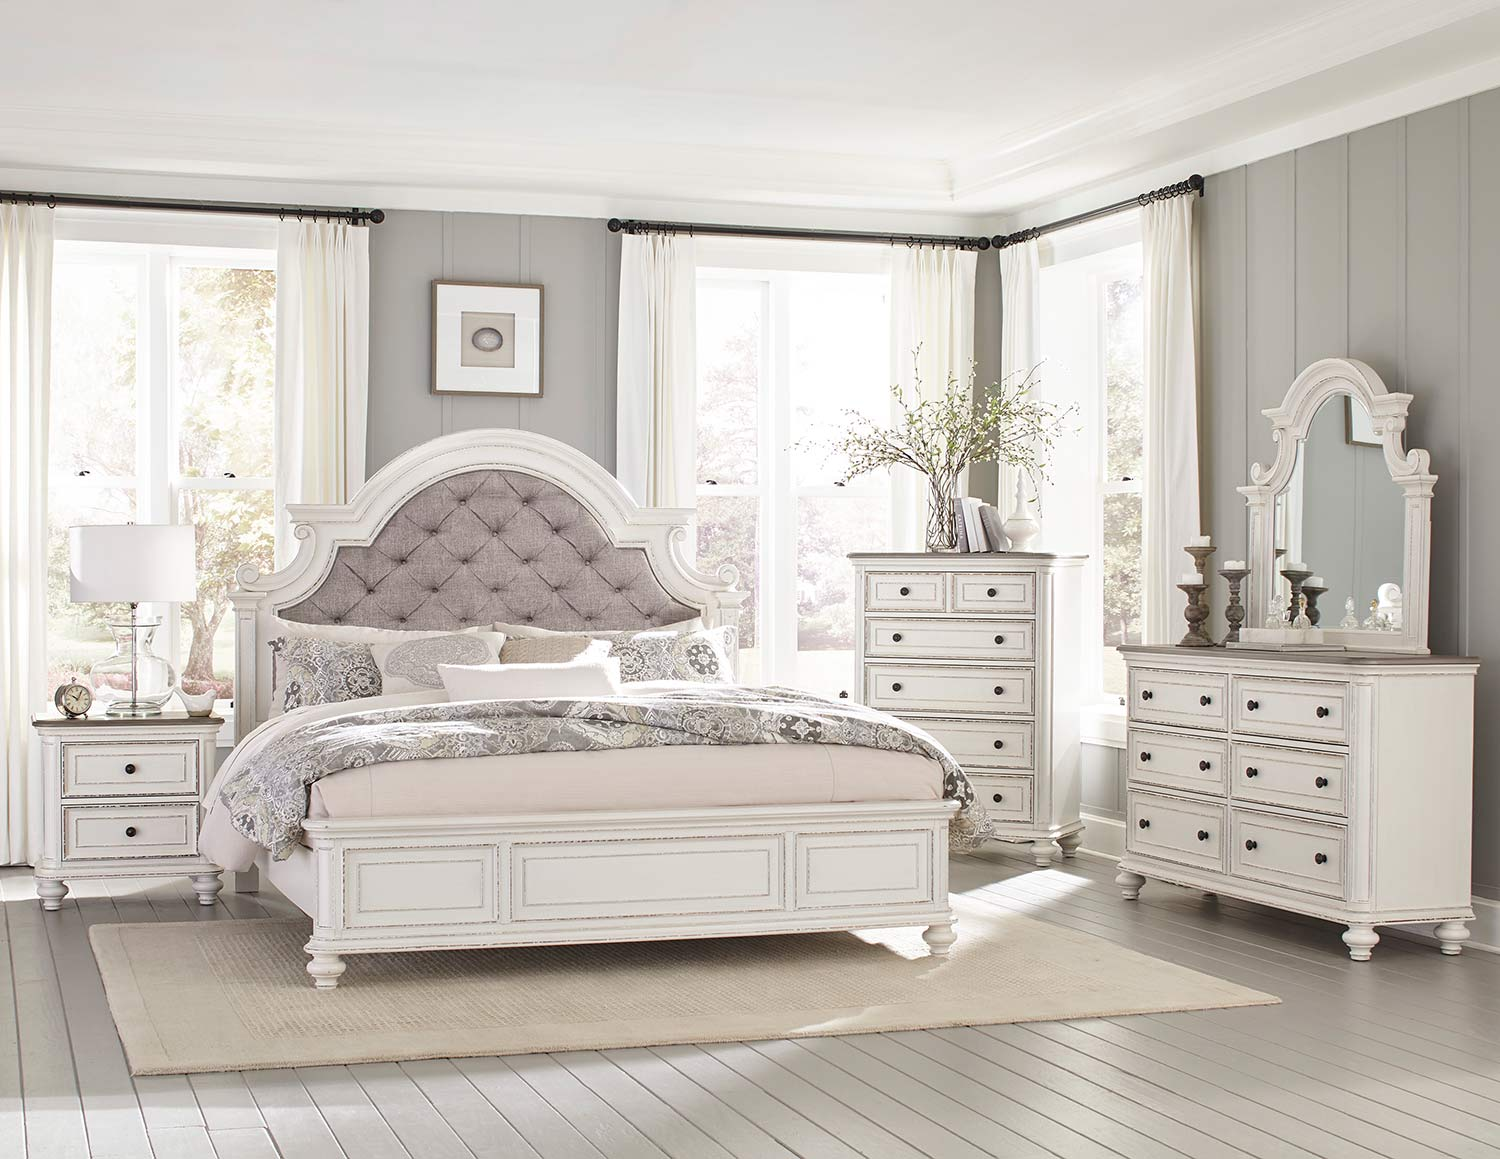 Homelegance Baylesford Bedroom Set - Antique White Rub-Through Finish